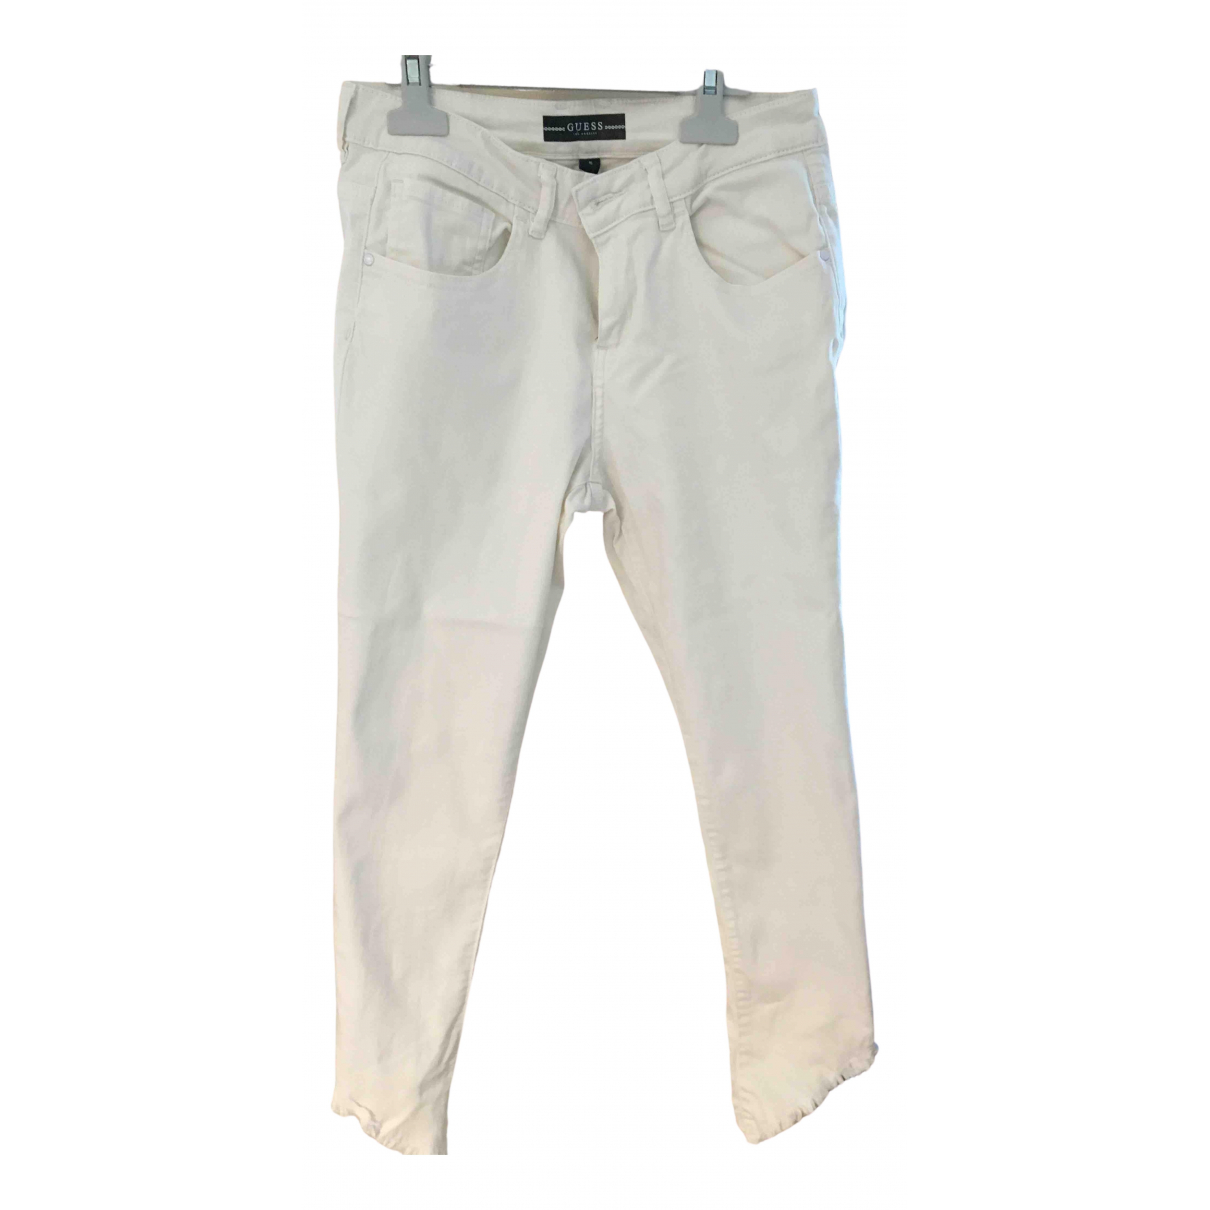 Guess \N White Cotton - elasthane Jeans for Women 36 FR